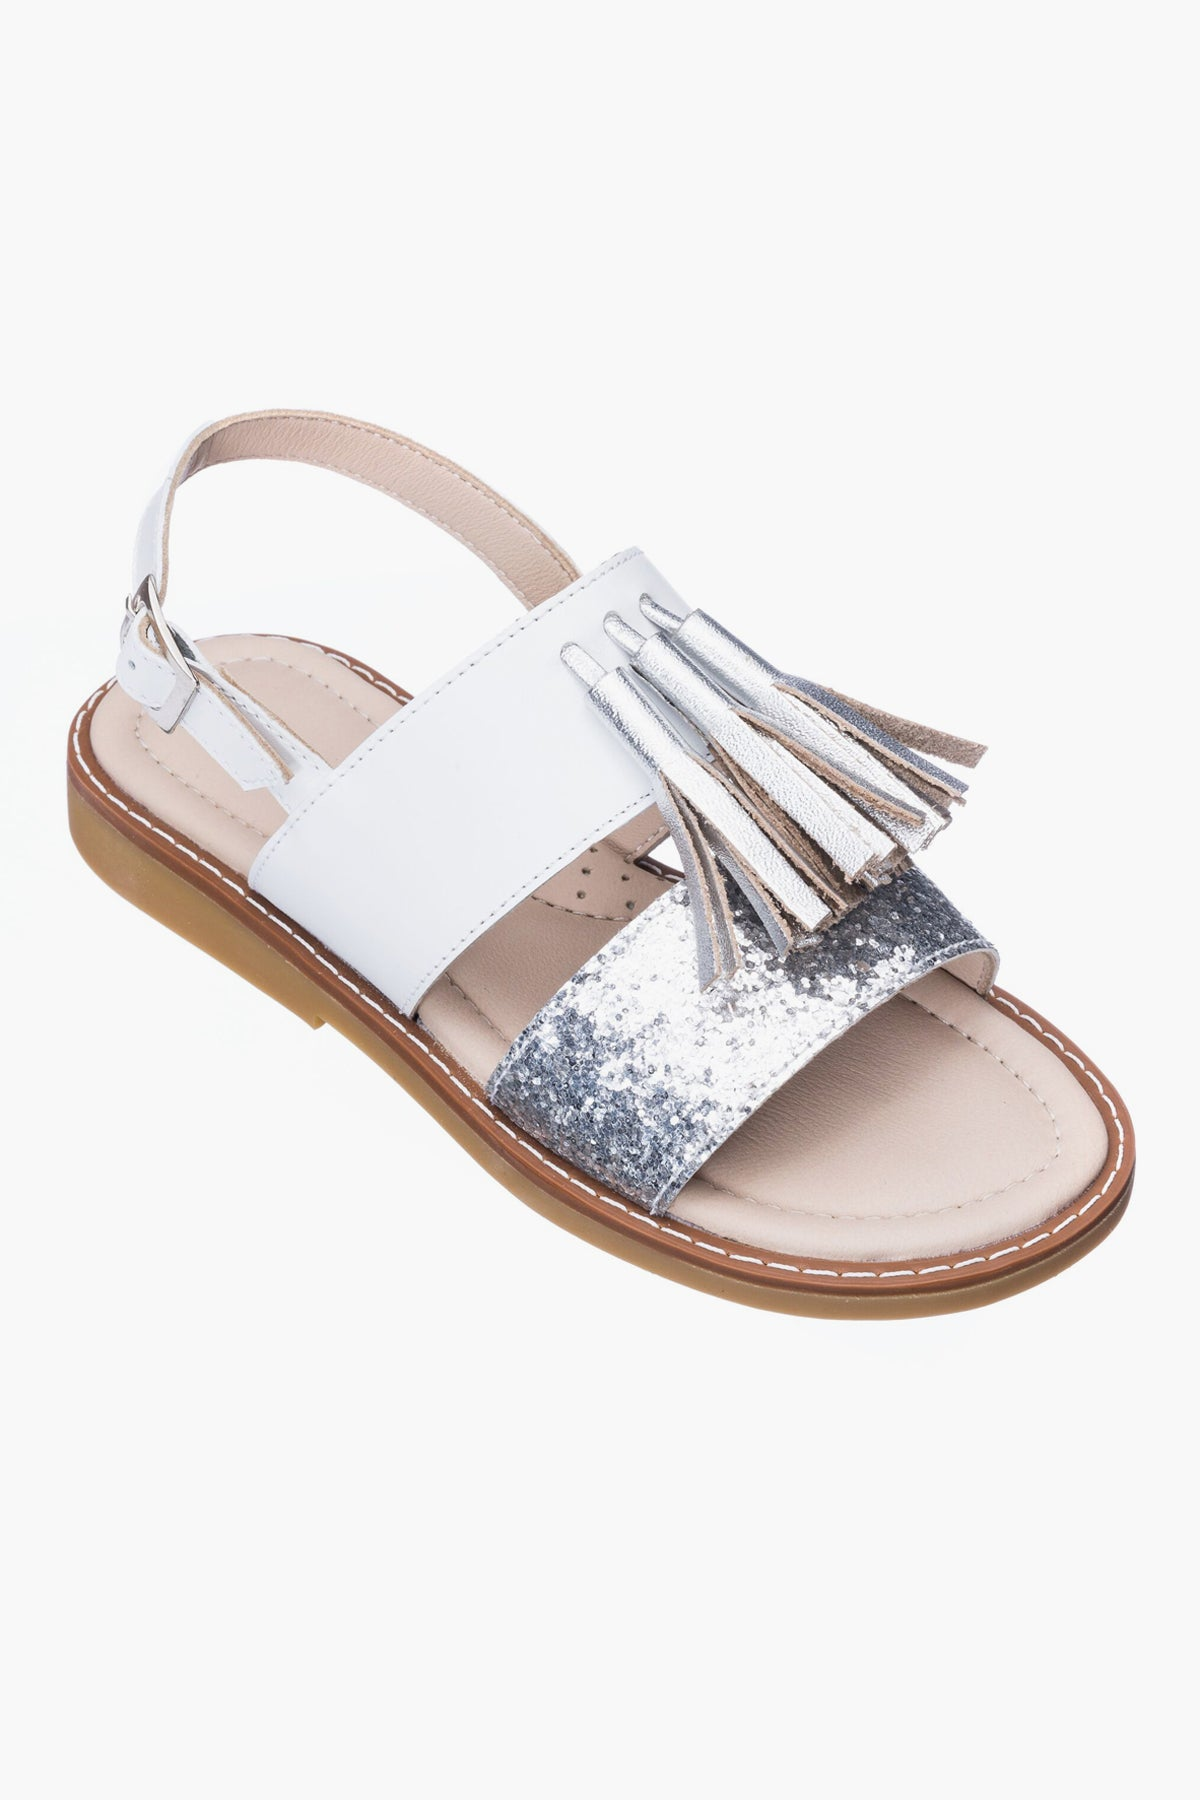 Elephantito Dalia Girls Sandals